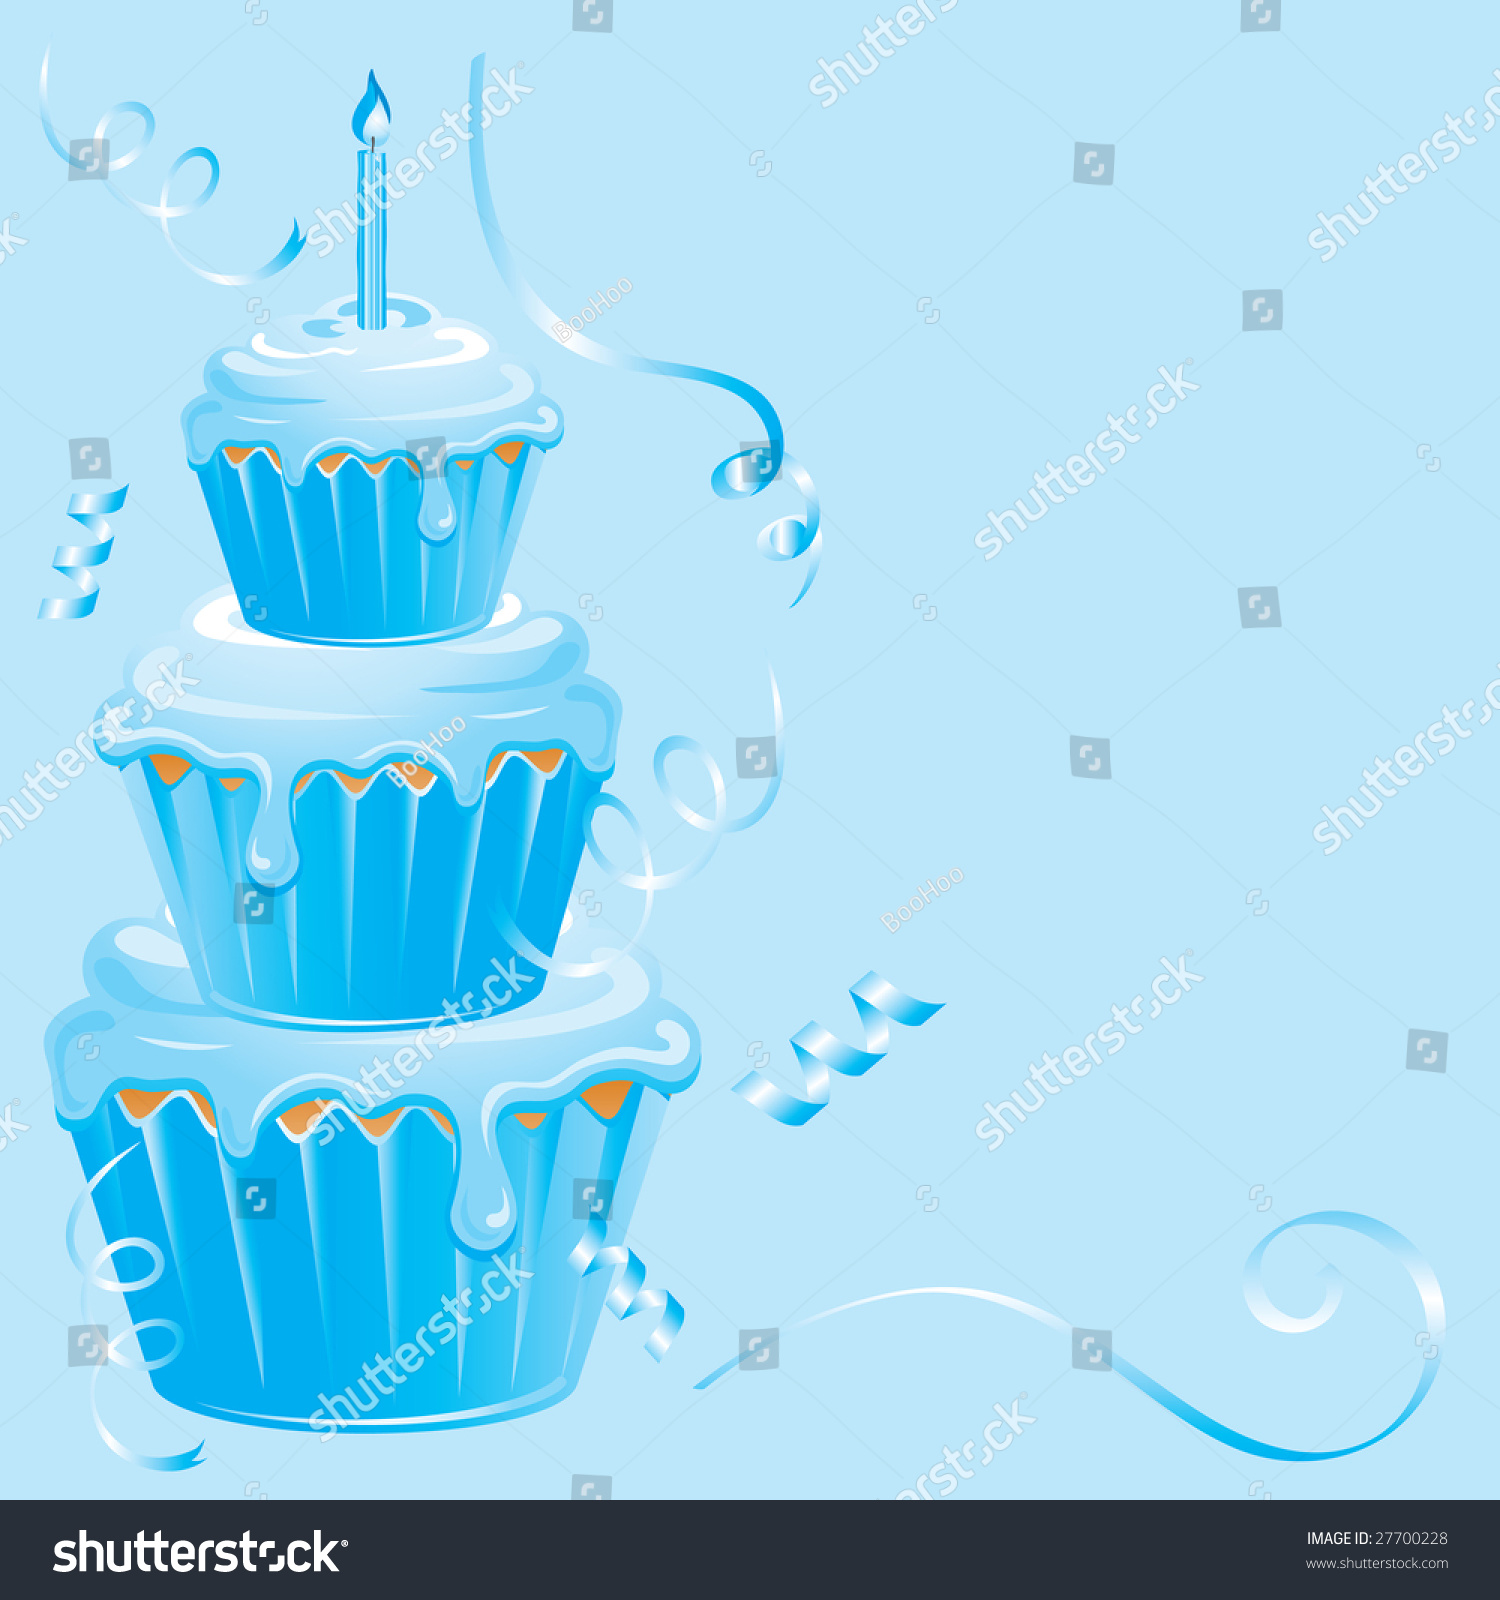 background birthday boy ; stock-photo-boy-s-birthday-cupcake-with-candle-confetti-streamers-on-a-pale-blue-background-27700228